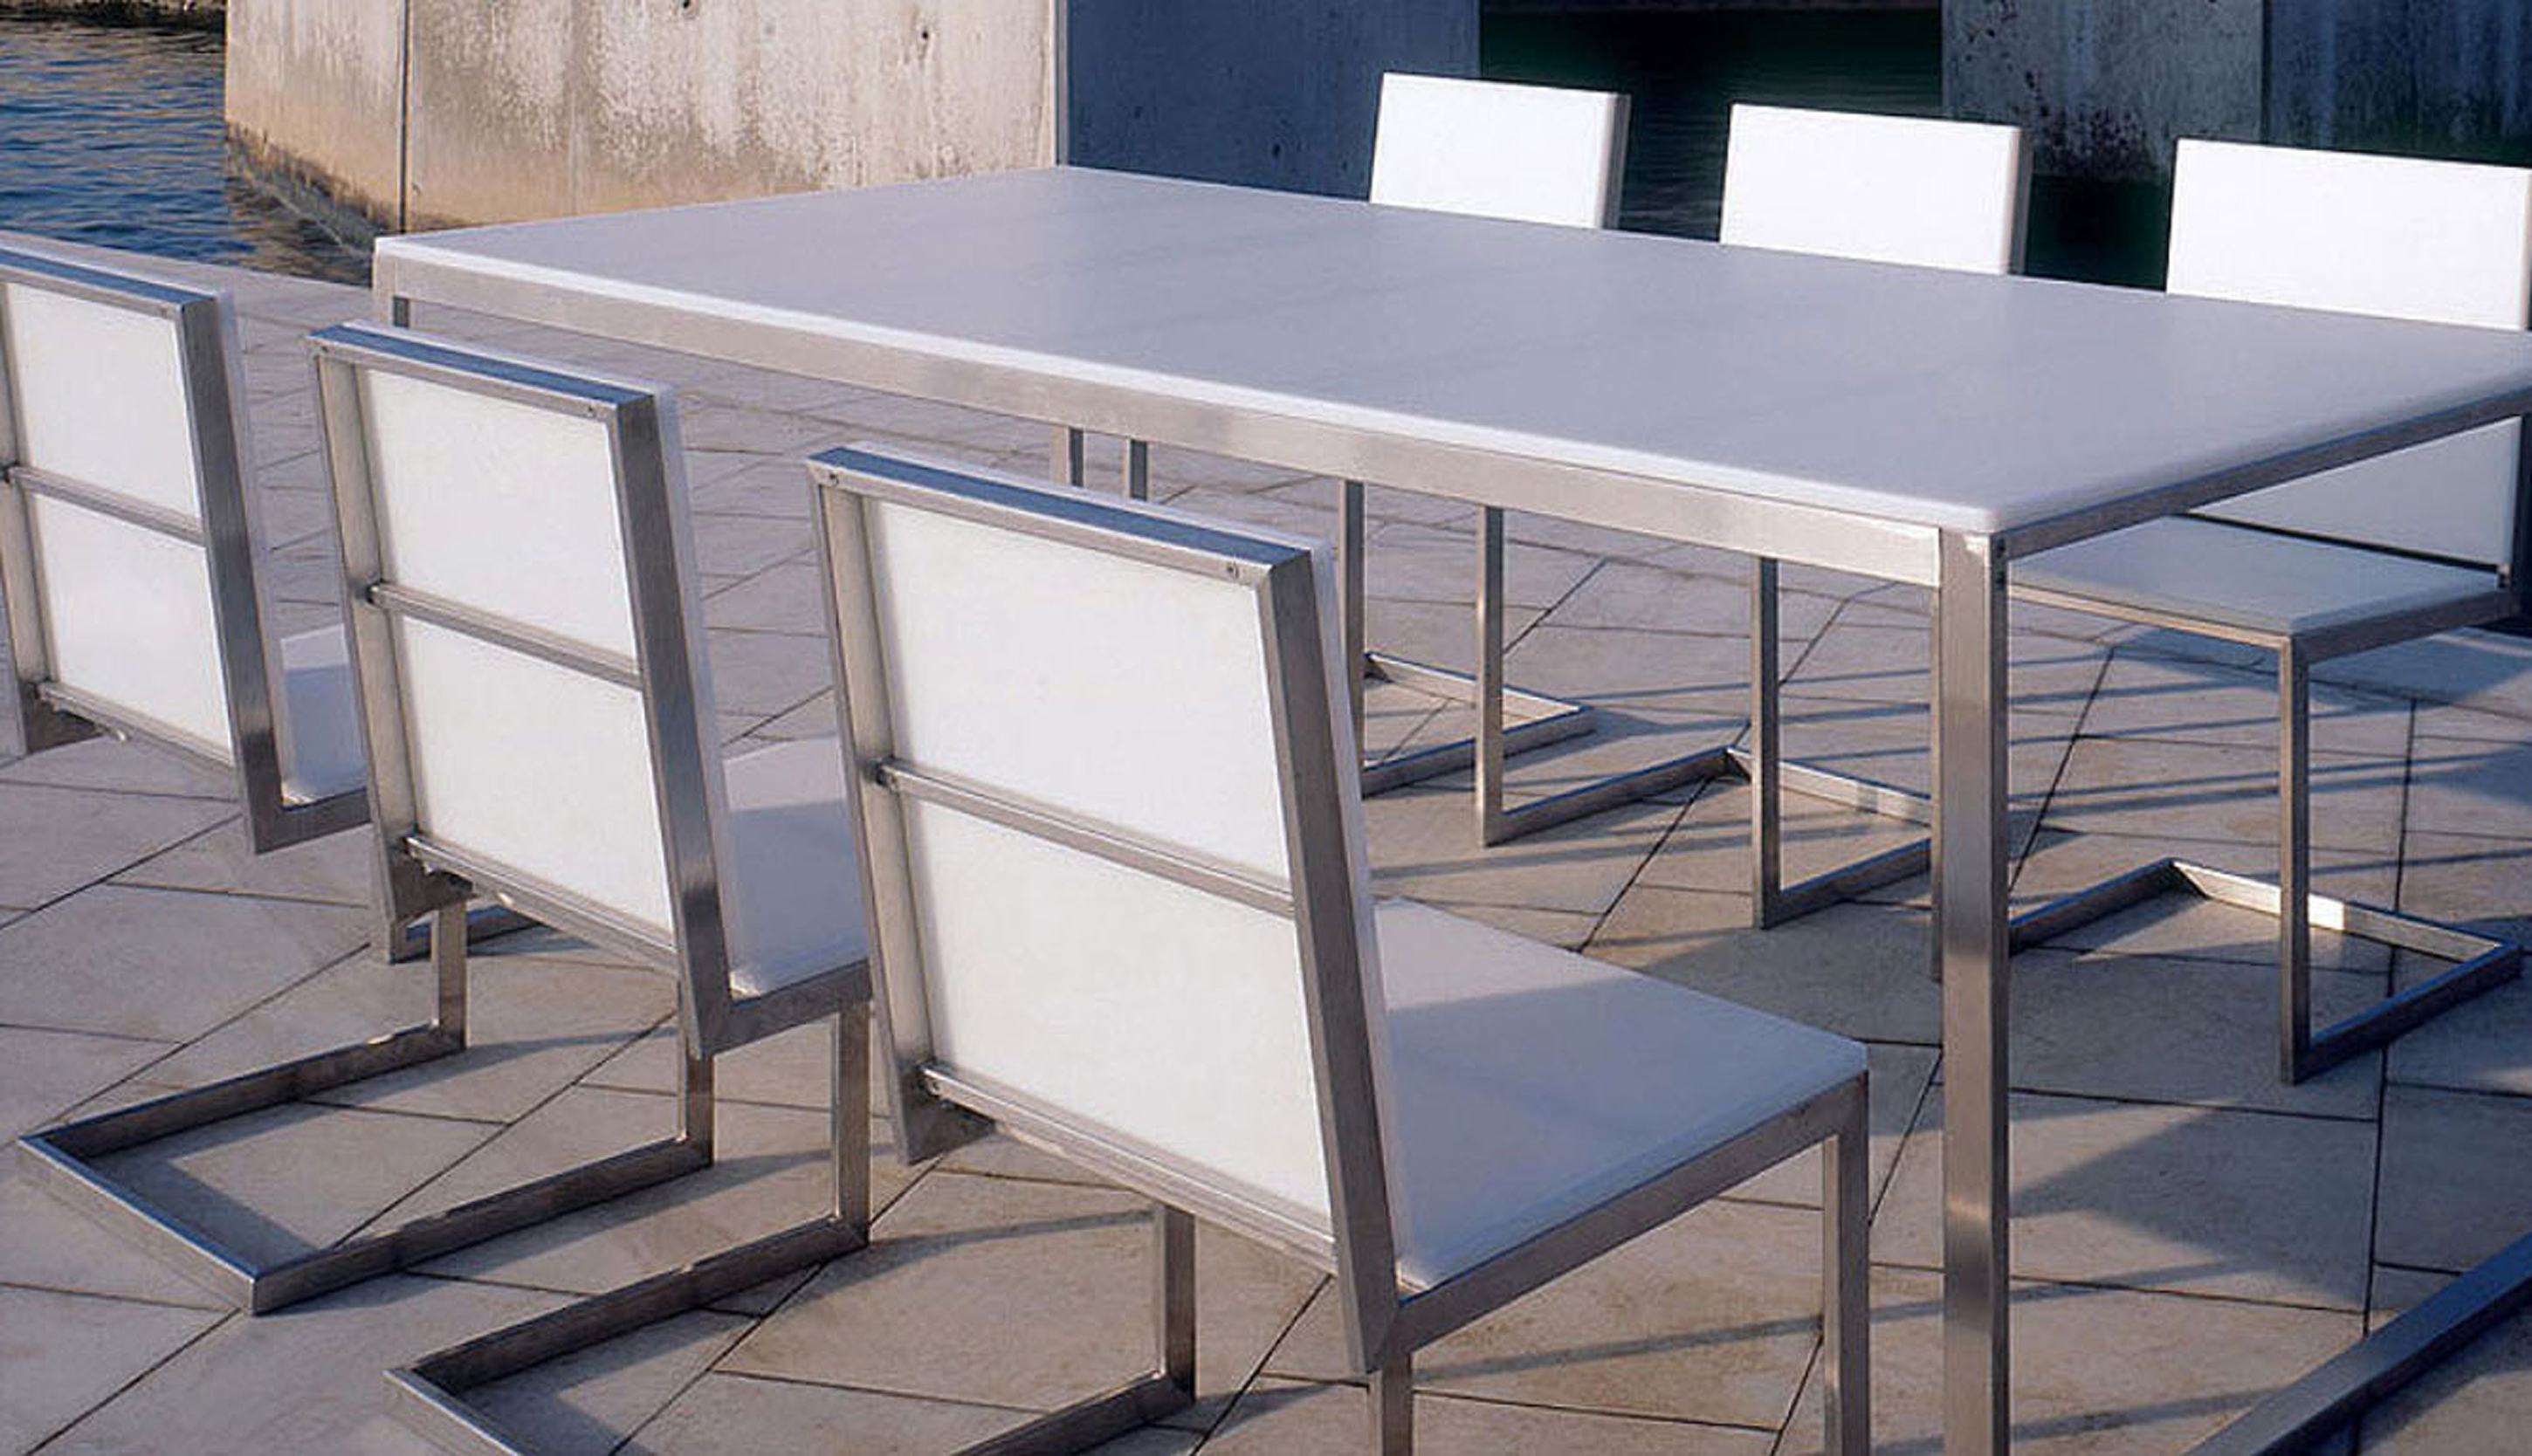 Lovely Modern Outdoor Dining Design Idea With White Dining Table With Silver Base And White Silver Chairs Nice Modern Outdoor Dining Design Ideas (View 14 of 20)